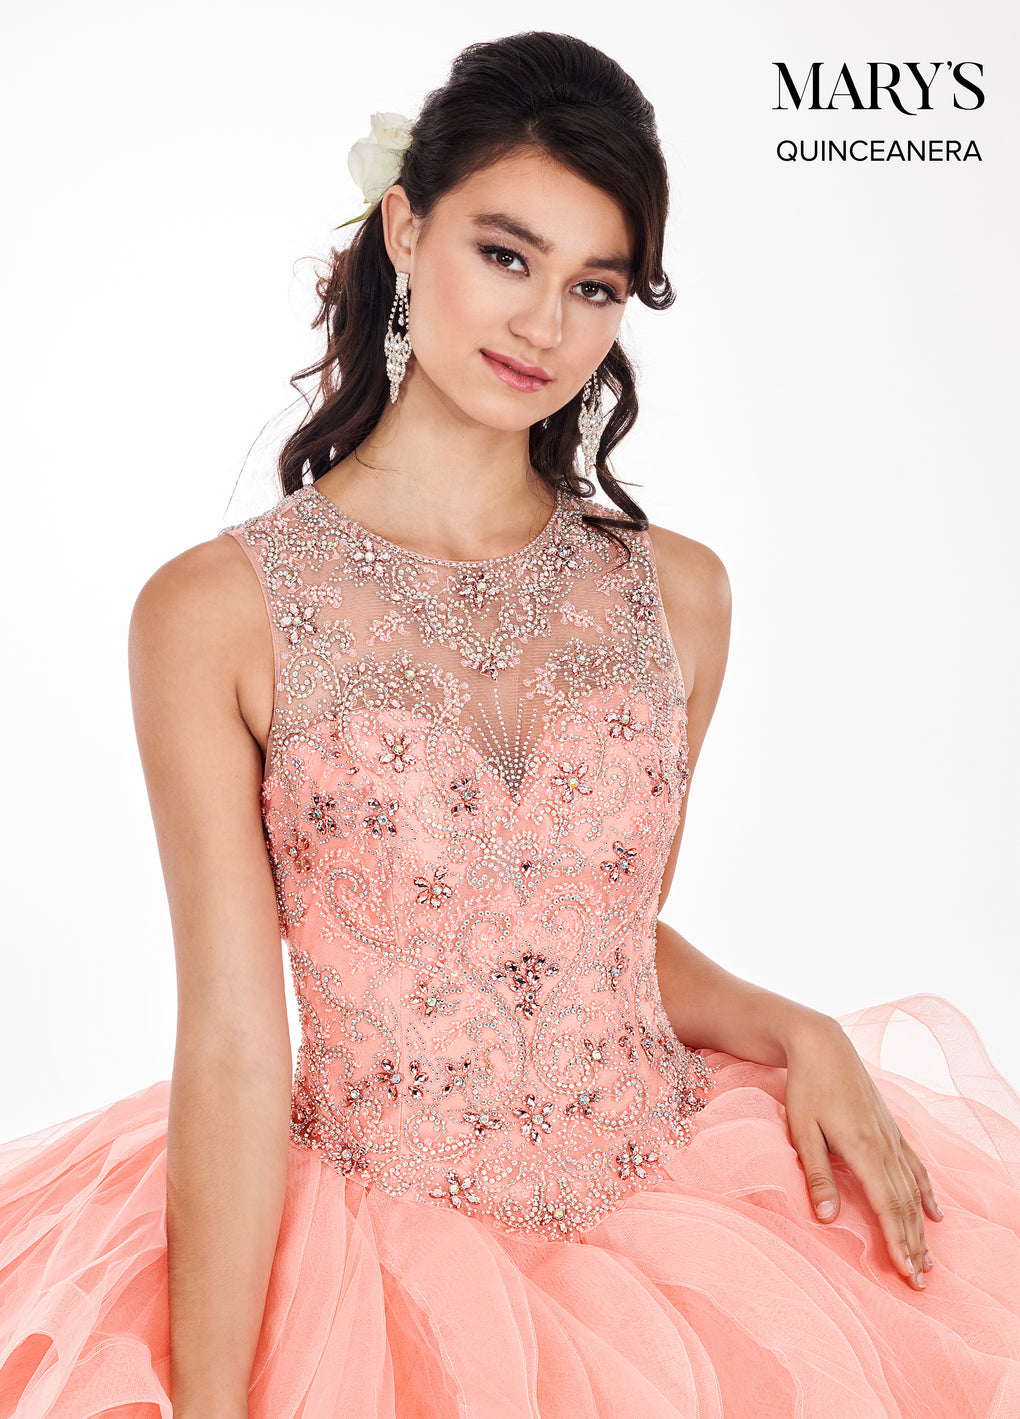 Marys Quinceanera Dresses in Champagne, Peach, Navy Color